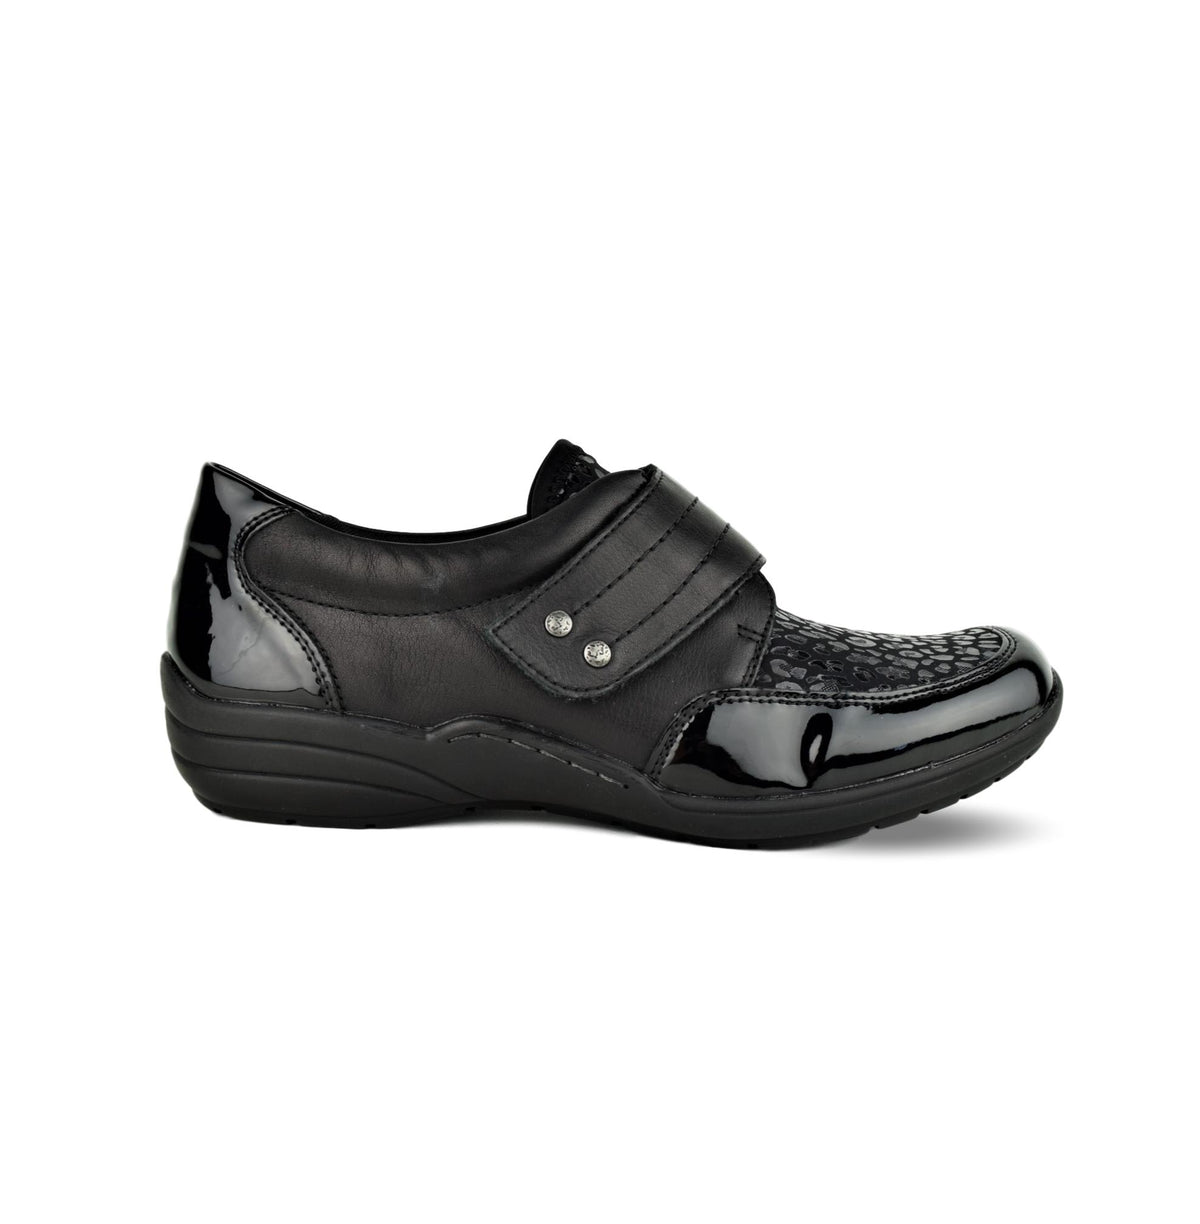 CARY - Remonte Casual Black